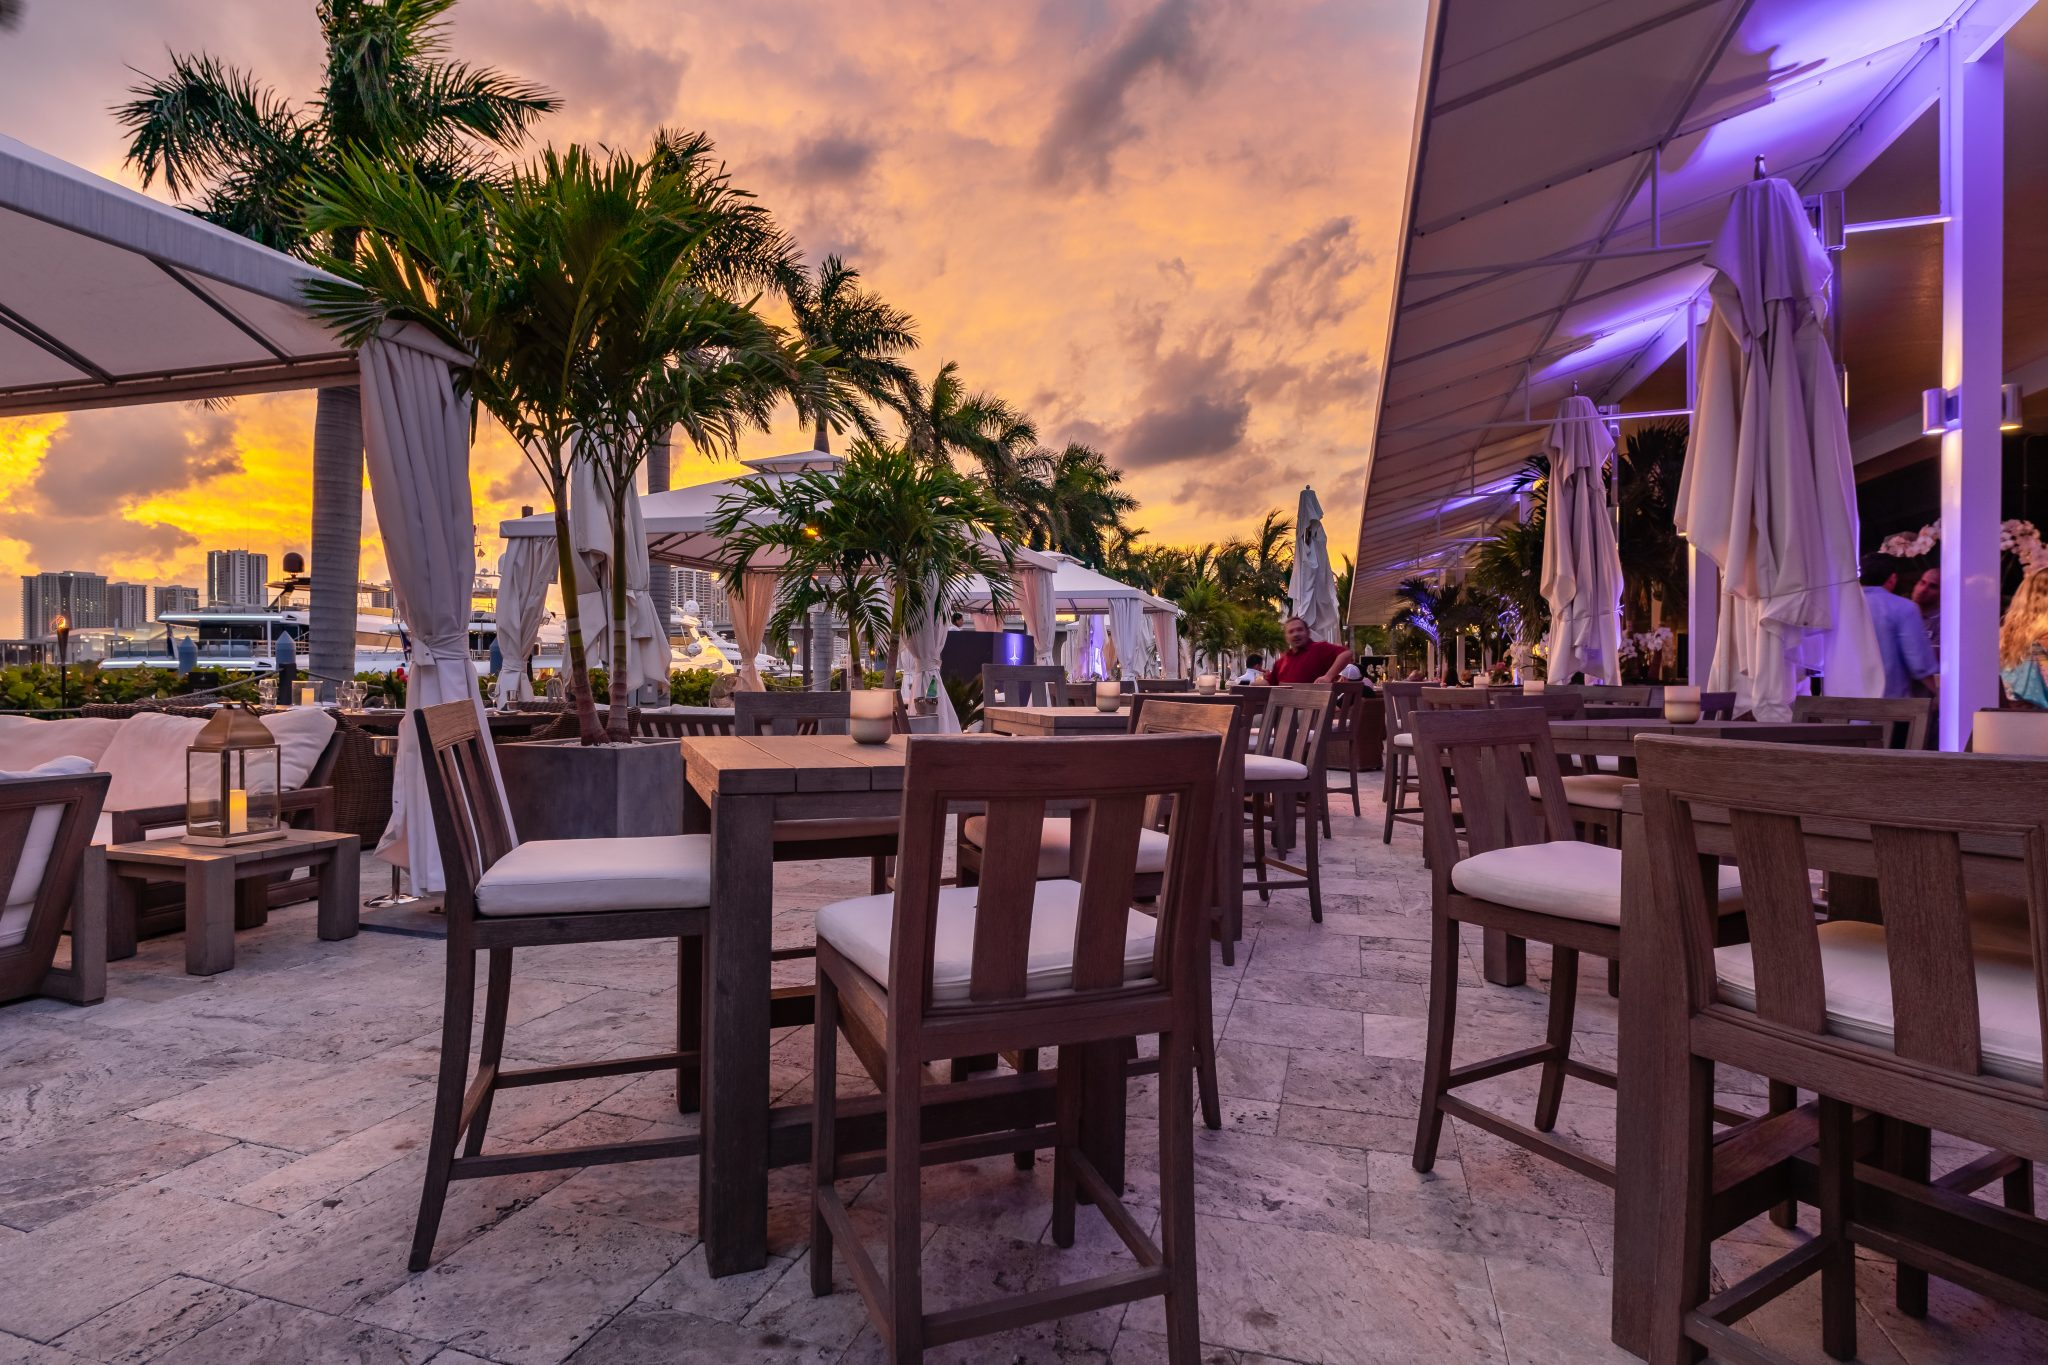 sunset sky at marina as backdrop to high top tables